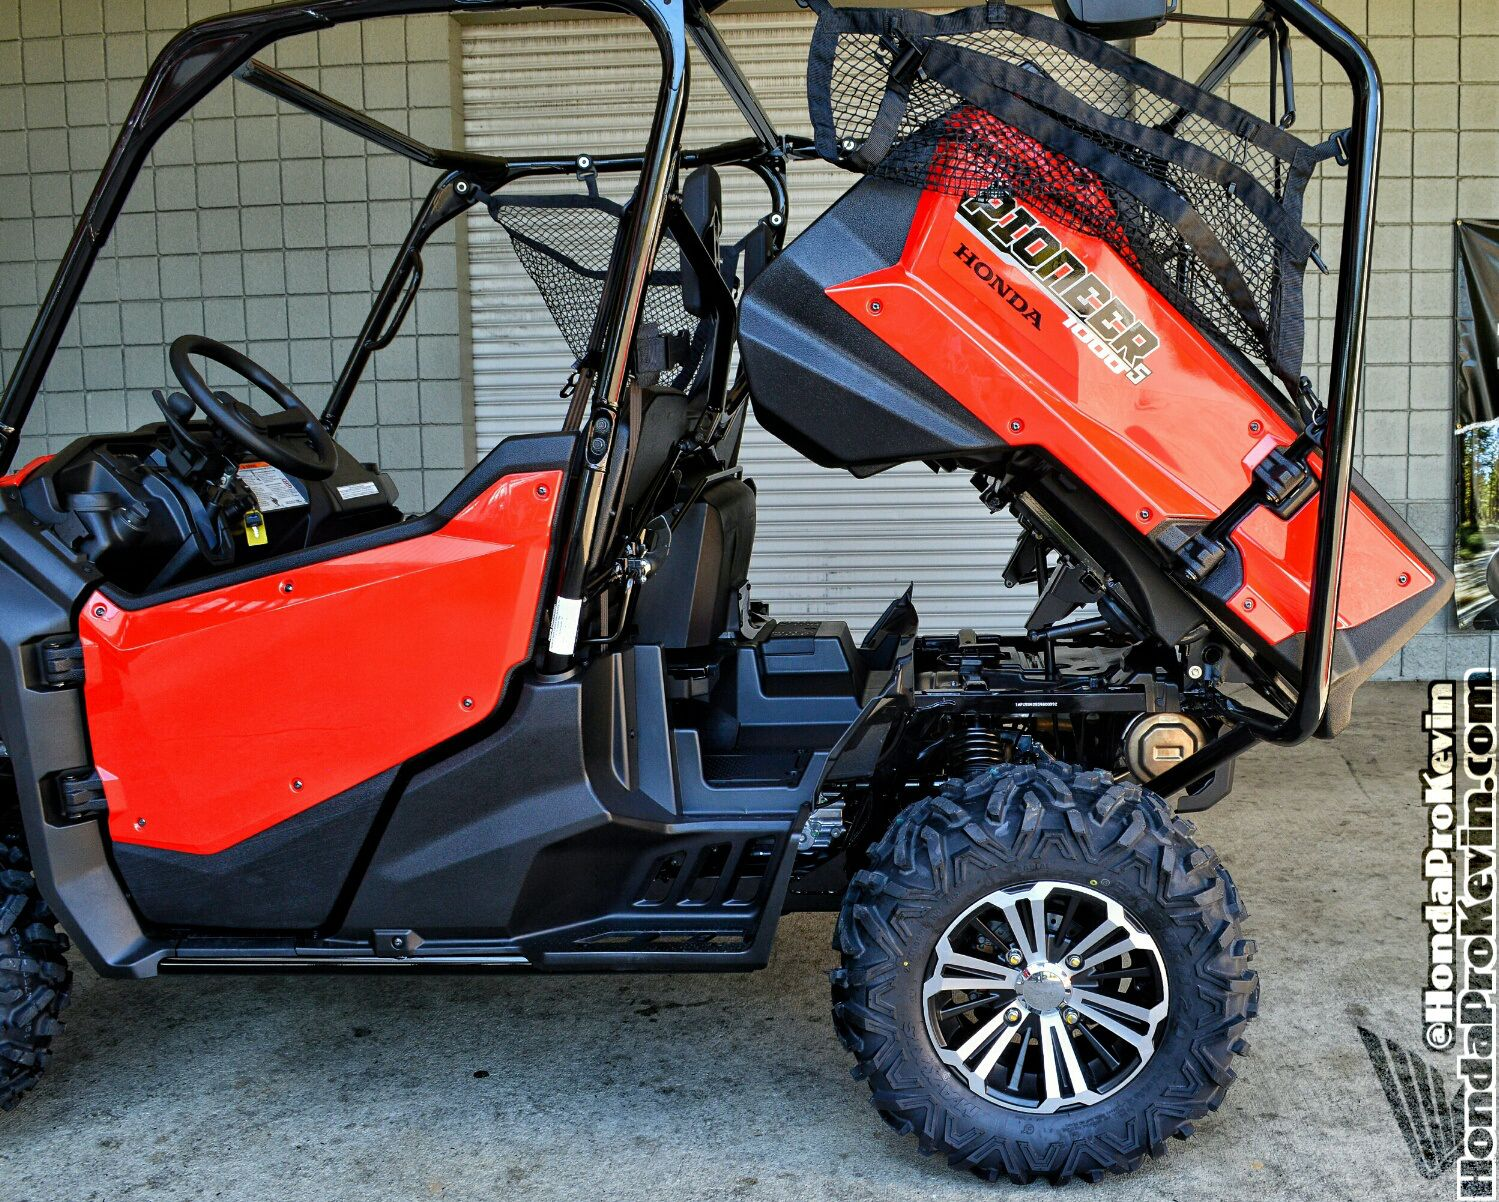 2016 Pioneer 1000 5 Ride Review All New Honda Sxs Utv Side By Side Atv Honda Pro Kevin Honda Pioneer 1000 Honda Atv